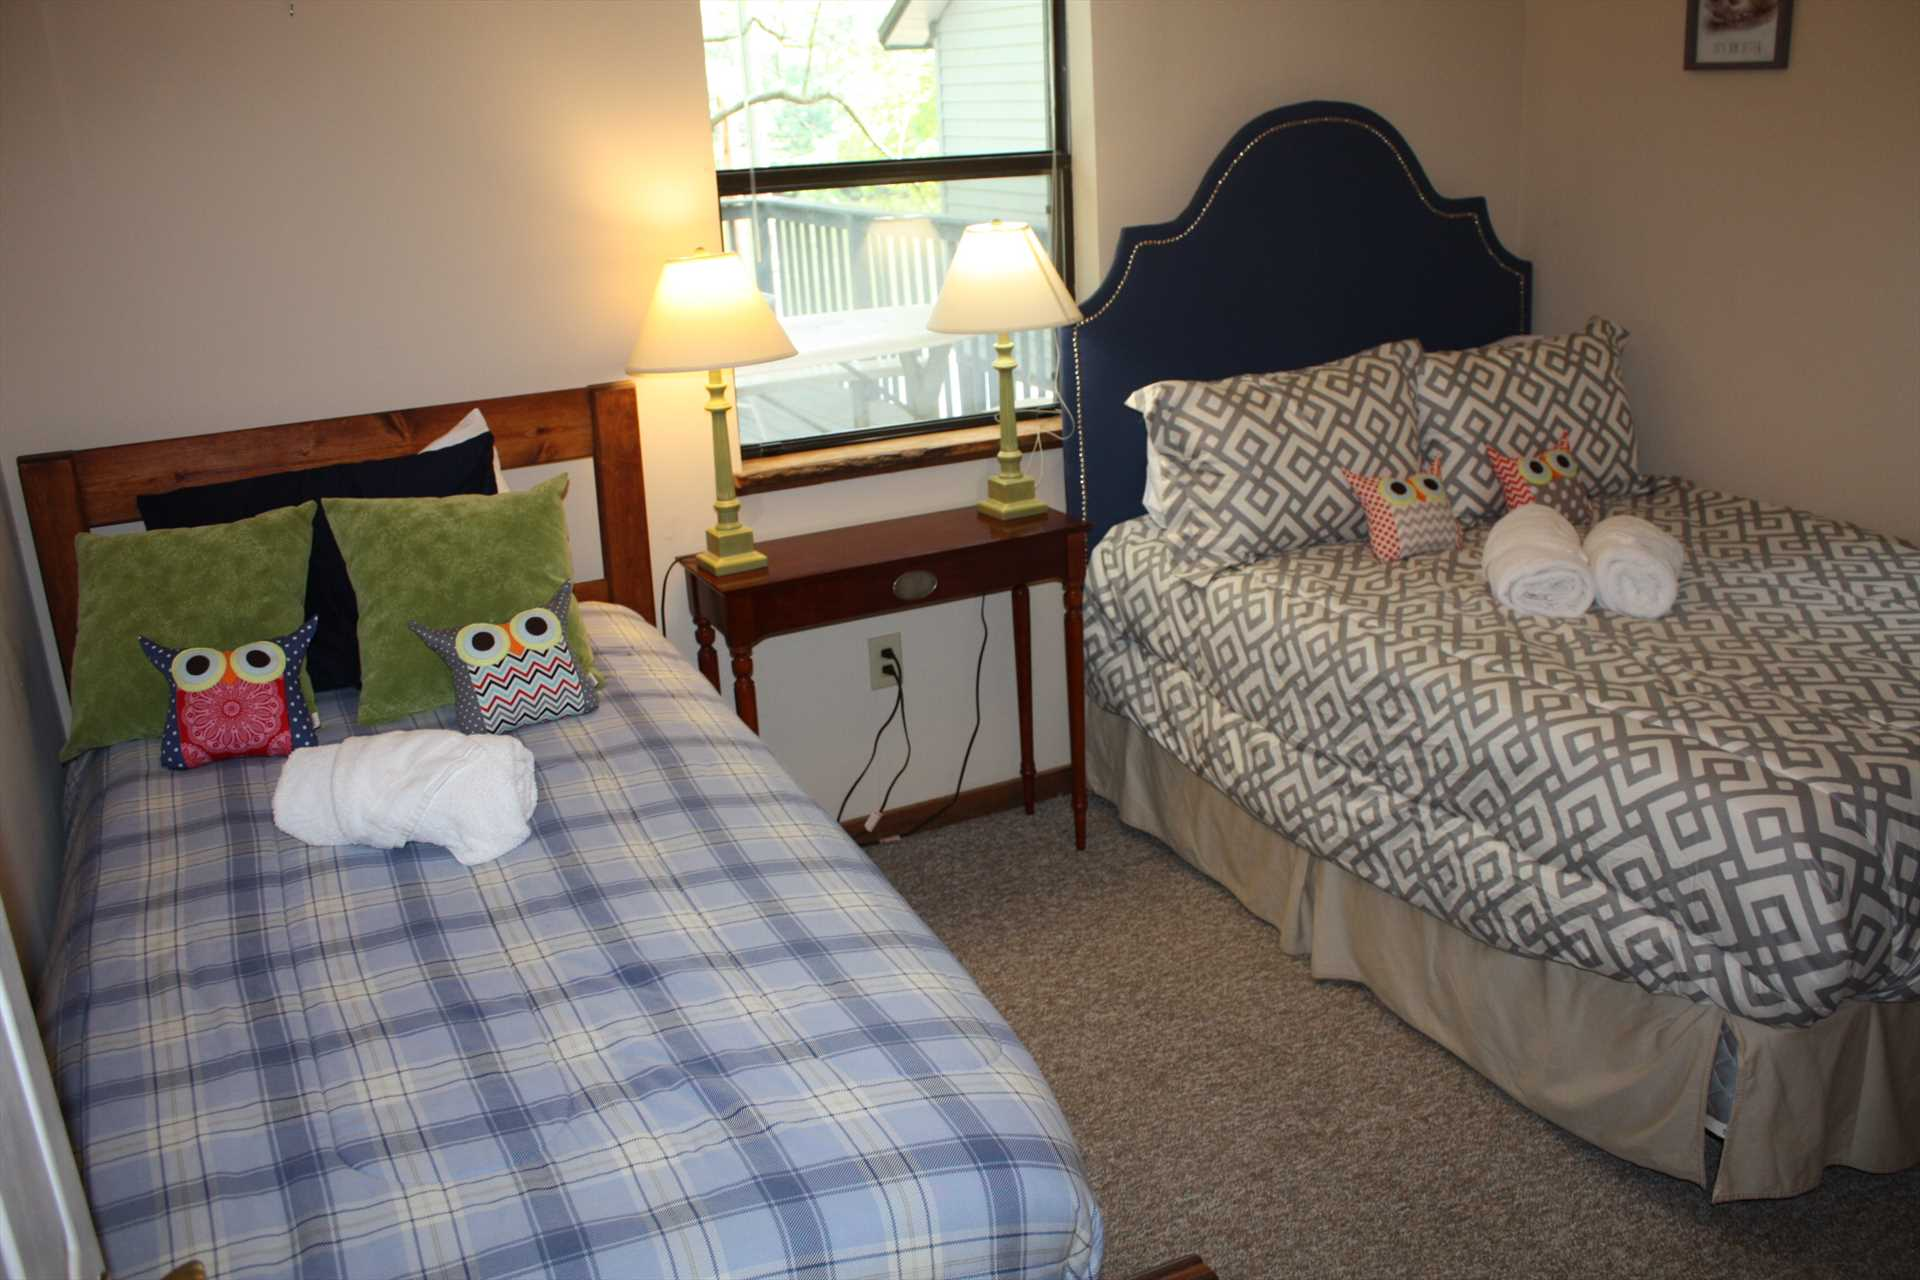 Full size bed and twin size bed